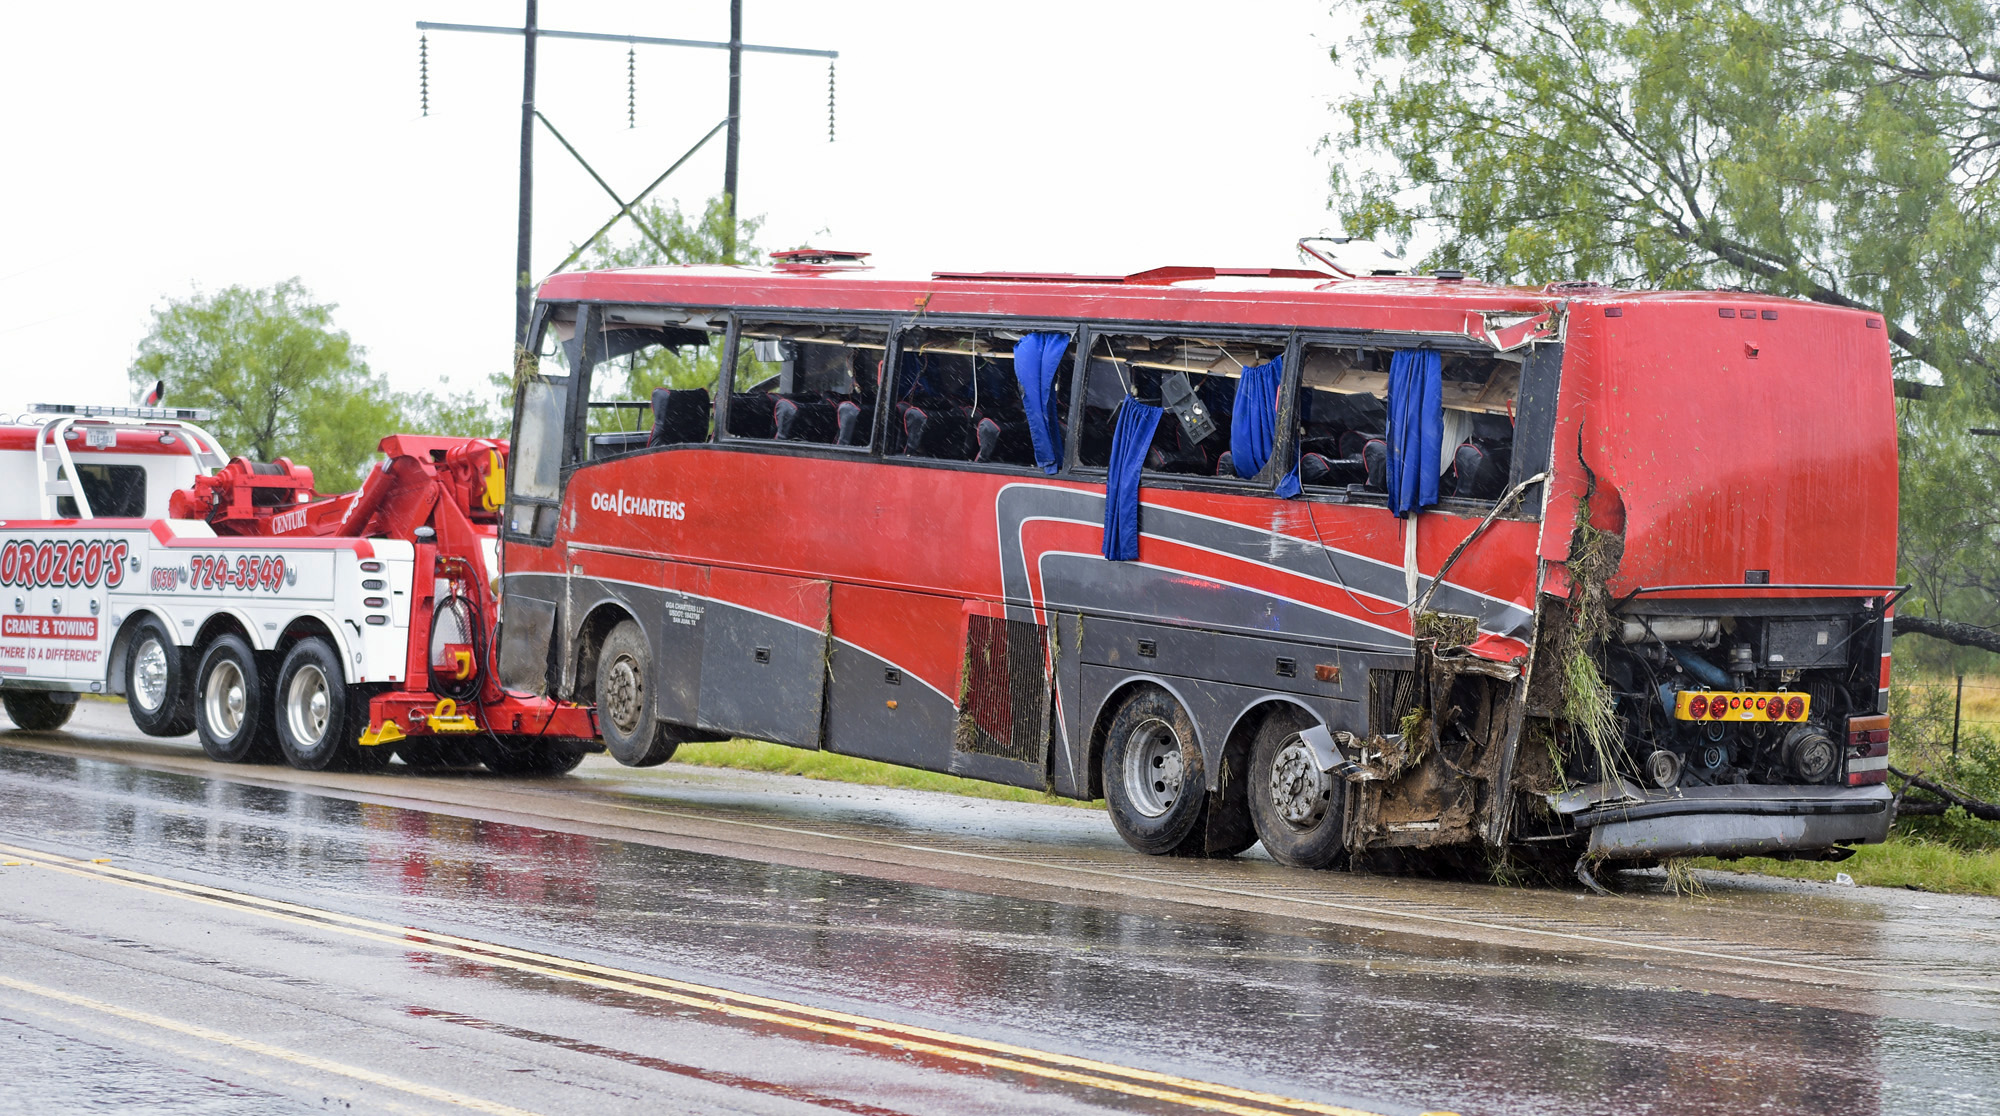 Injured In Accident 8 Dead 44 Injured In Charter Bus Crash In Texas